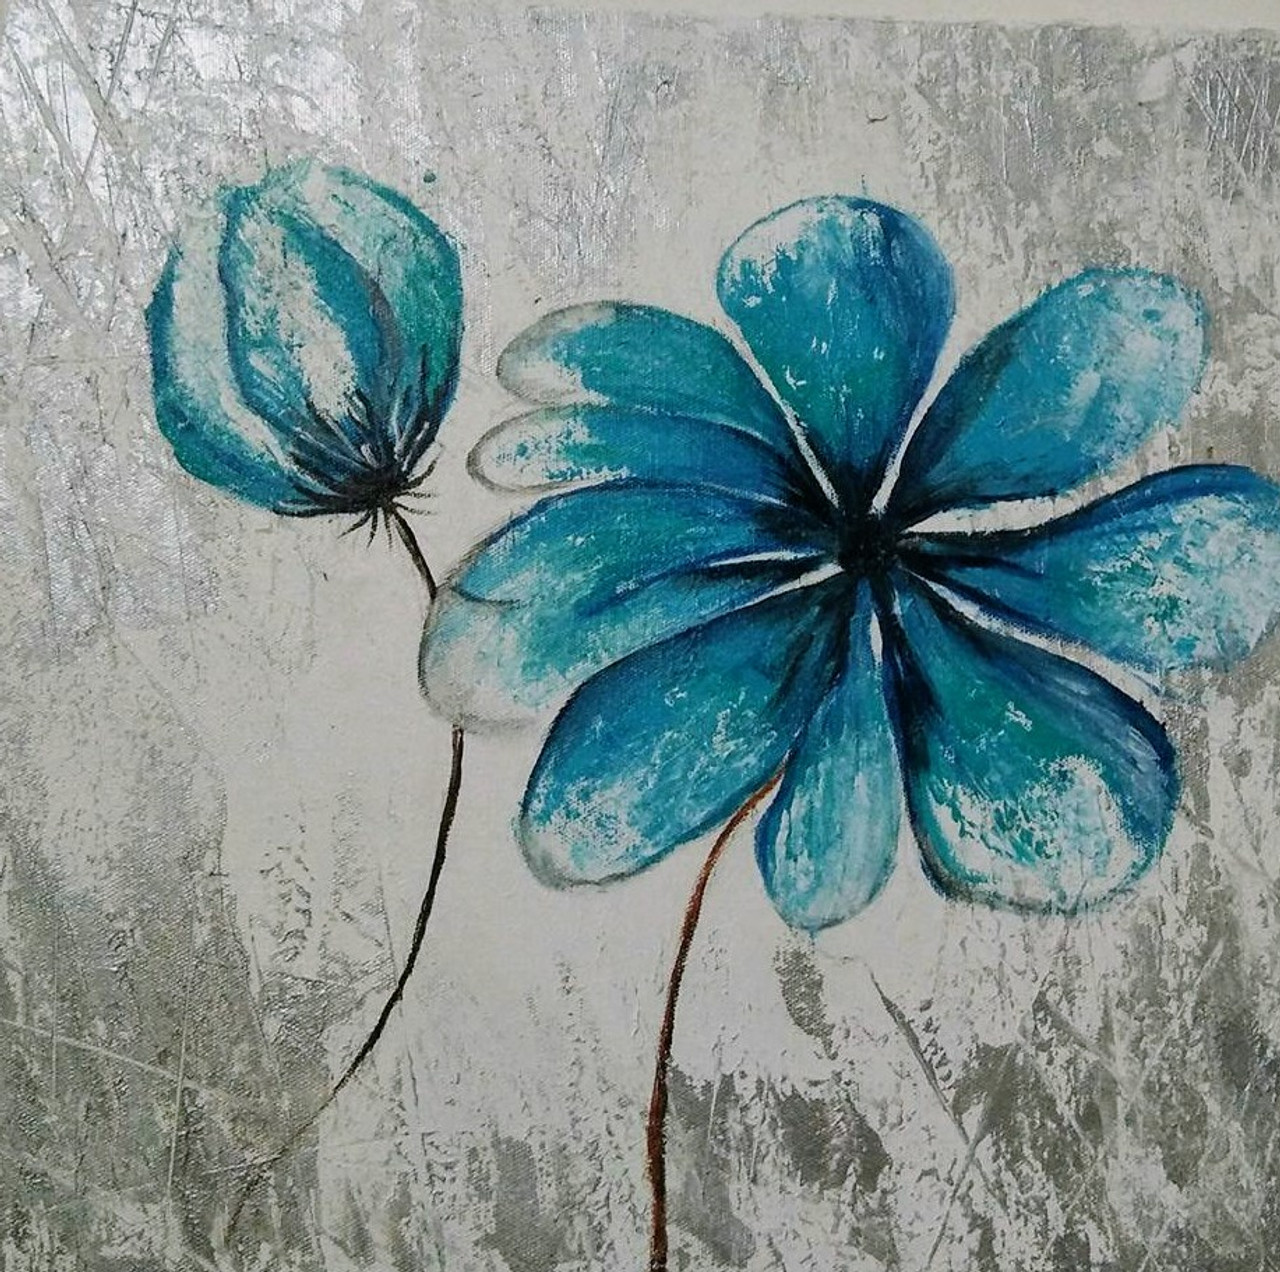 Buy A Beautiful Snow Valley Blue Flower Handmade Painting By Manjusha Thokal Code Art 3719 44128 Paintings For Sale Online In India